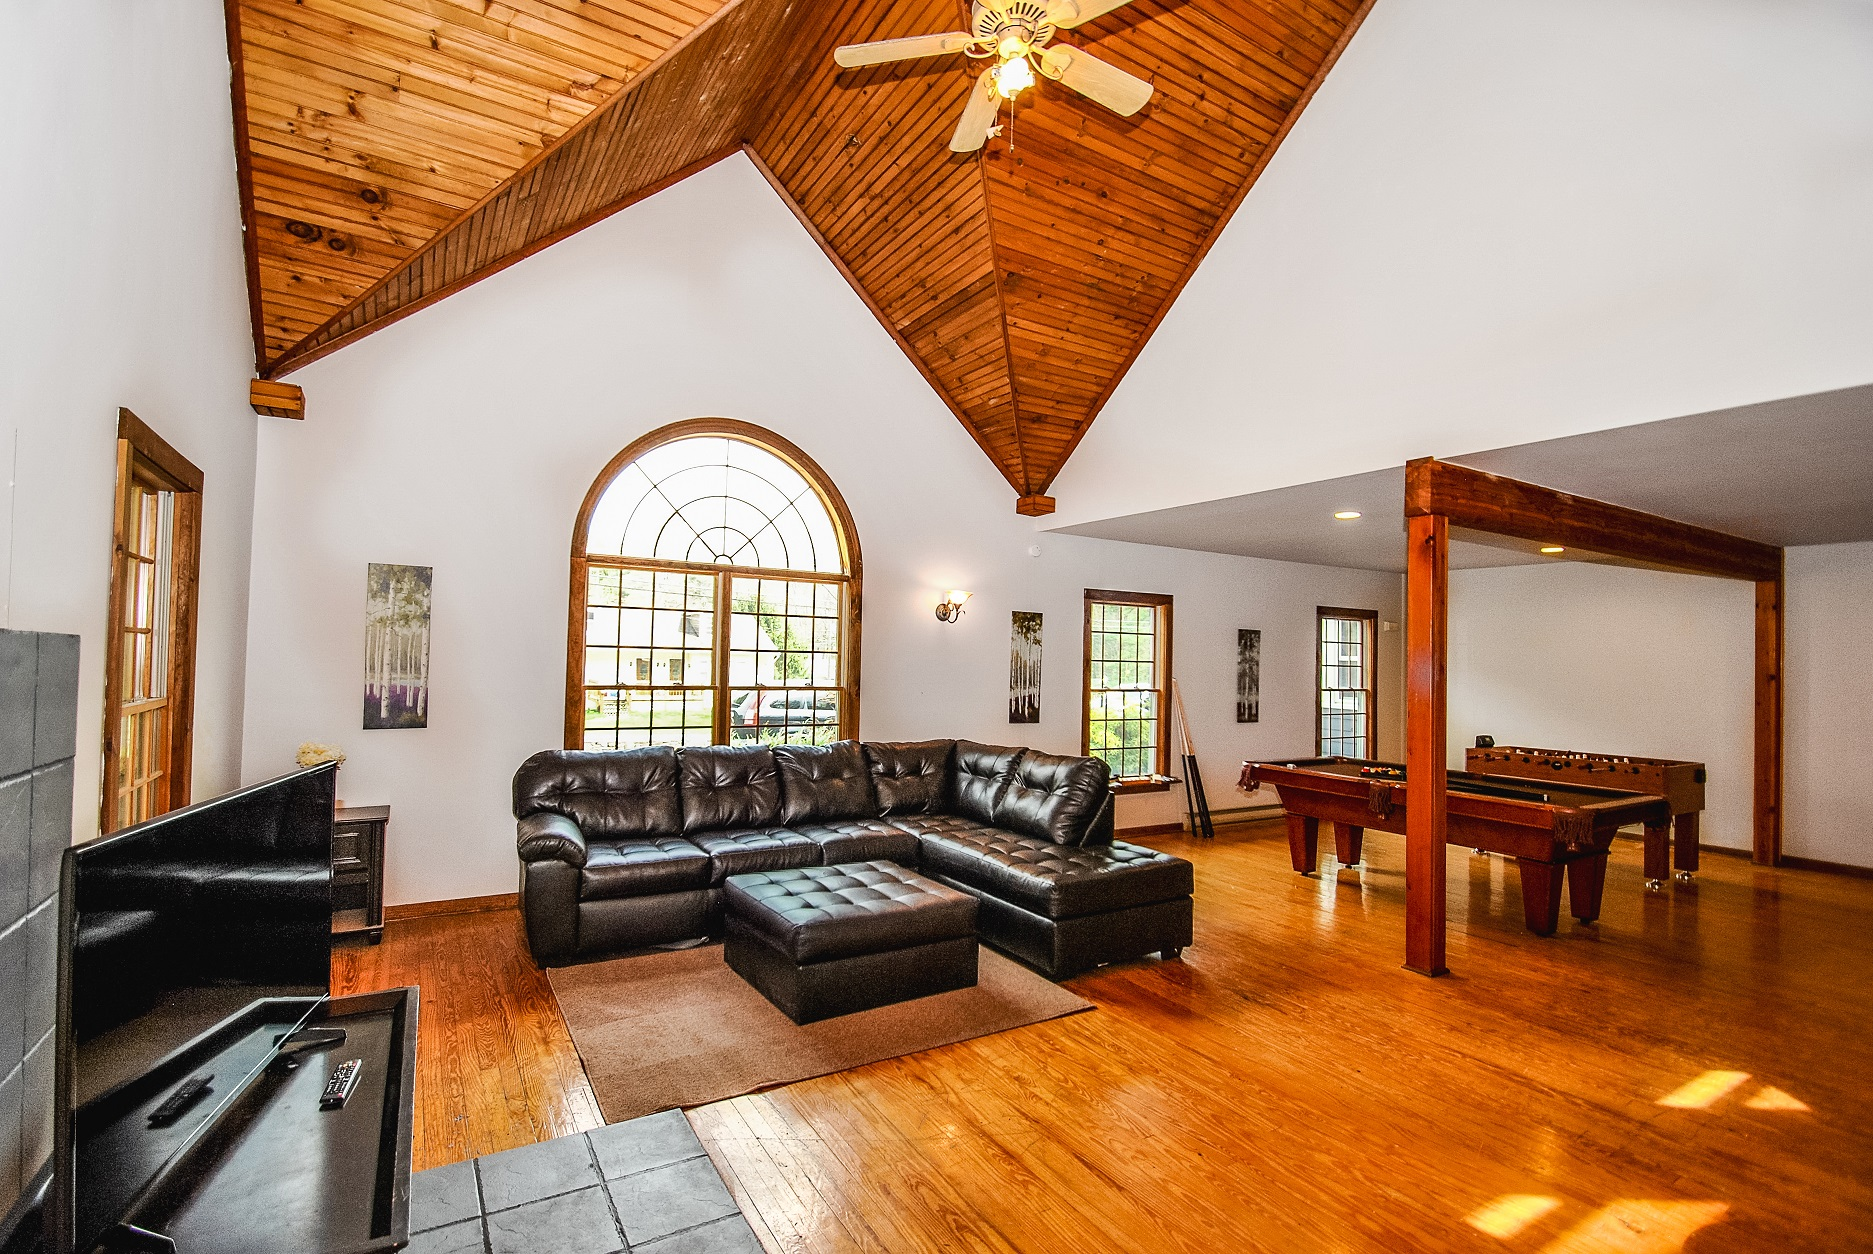 Sleeps 21: 8 Bedrooms (8 queen beds), 8.5 Baths, Game Room with Roku w/Sling/Netflix, Gas Firepit on the side, BBQ Grill, Wood Fireplace in Living Area and a Seperate Gas Fireplace in Great Room, Pool Table, Foosball Table and huge dining room table seats 12-14.